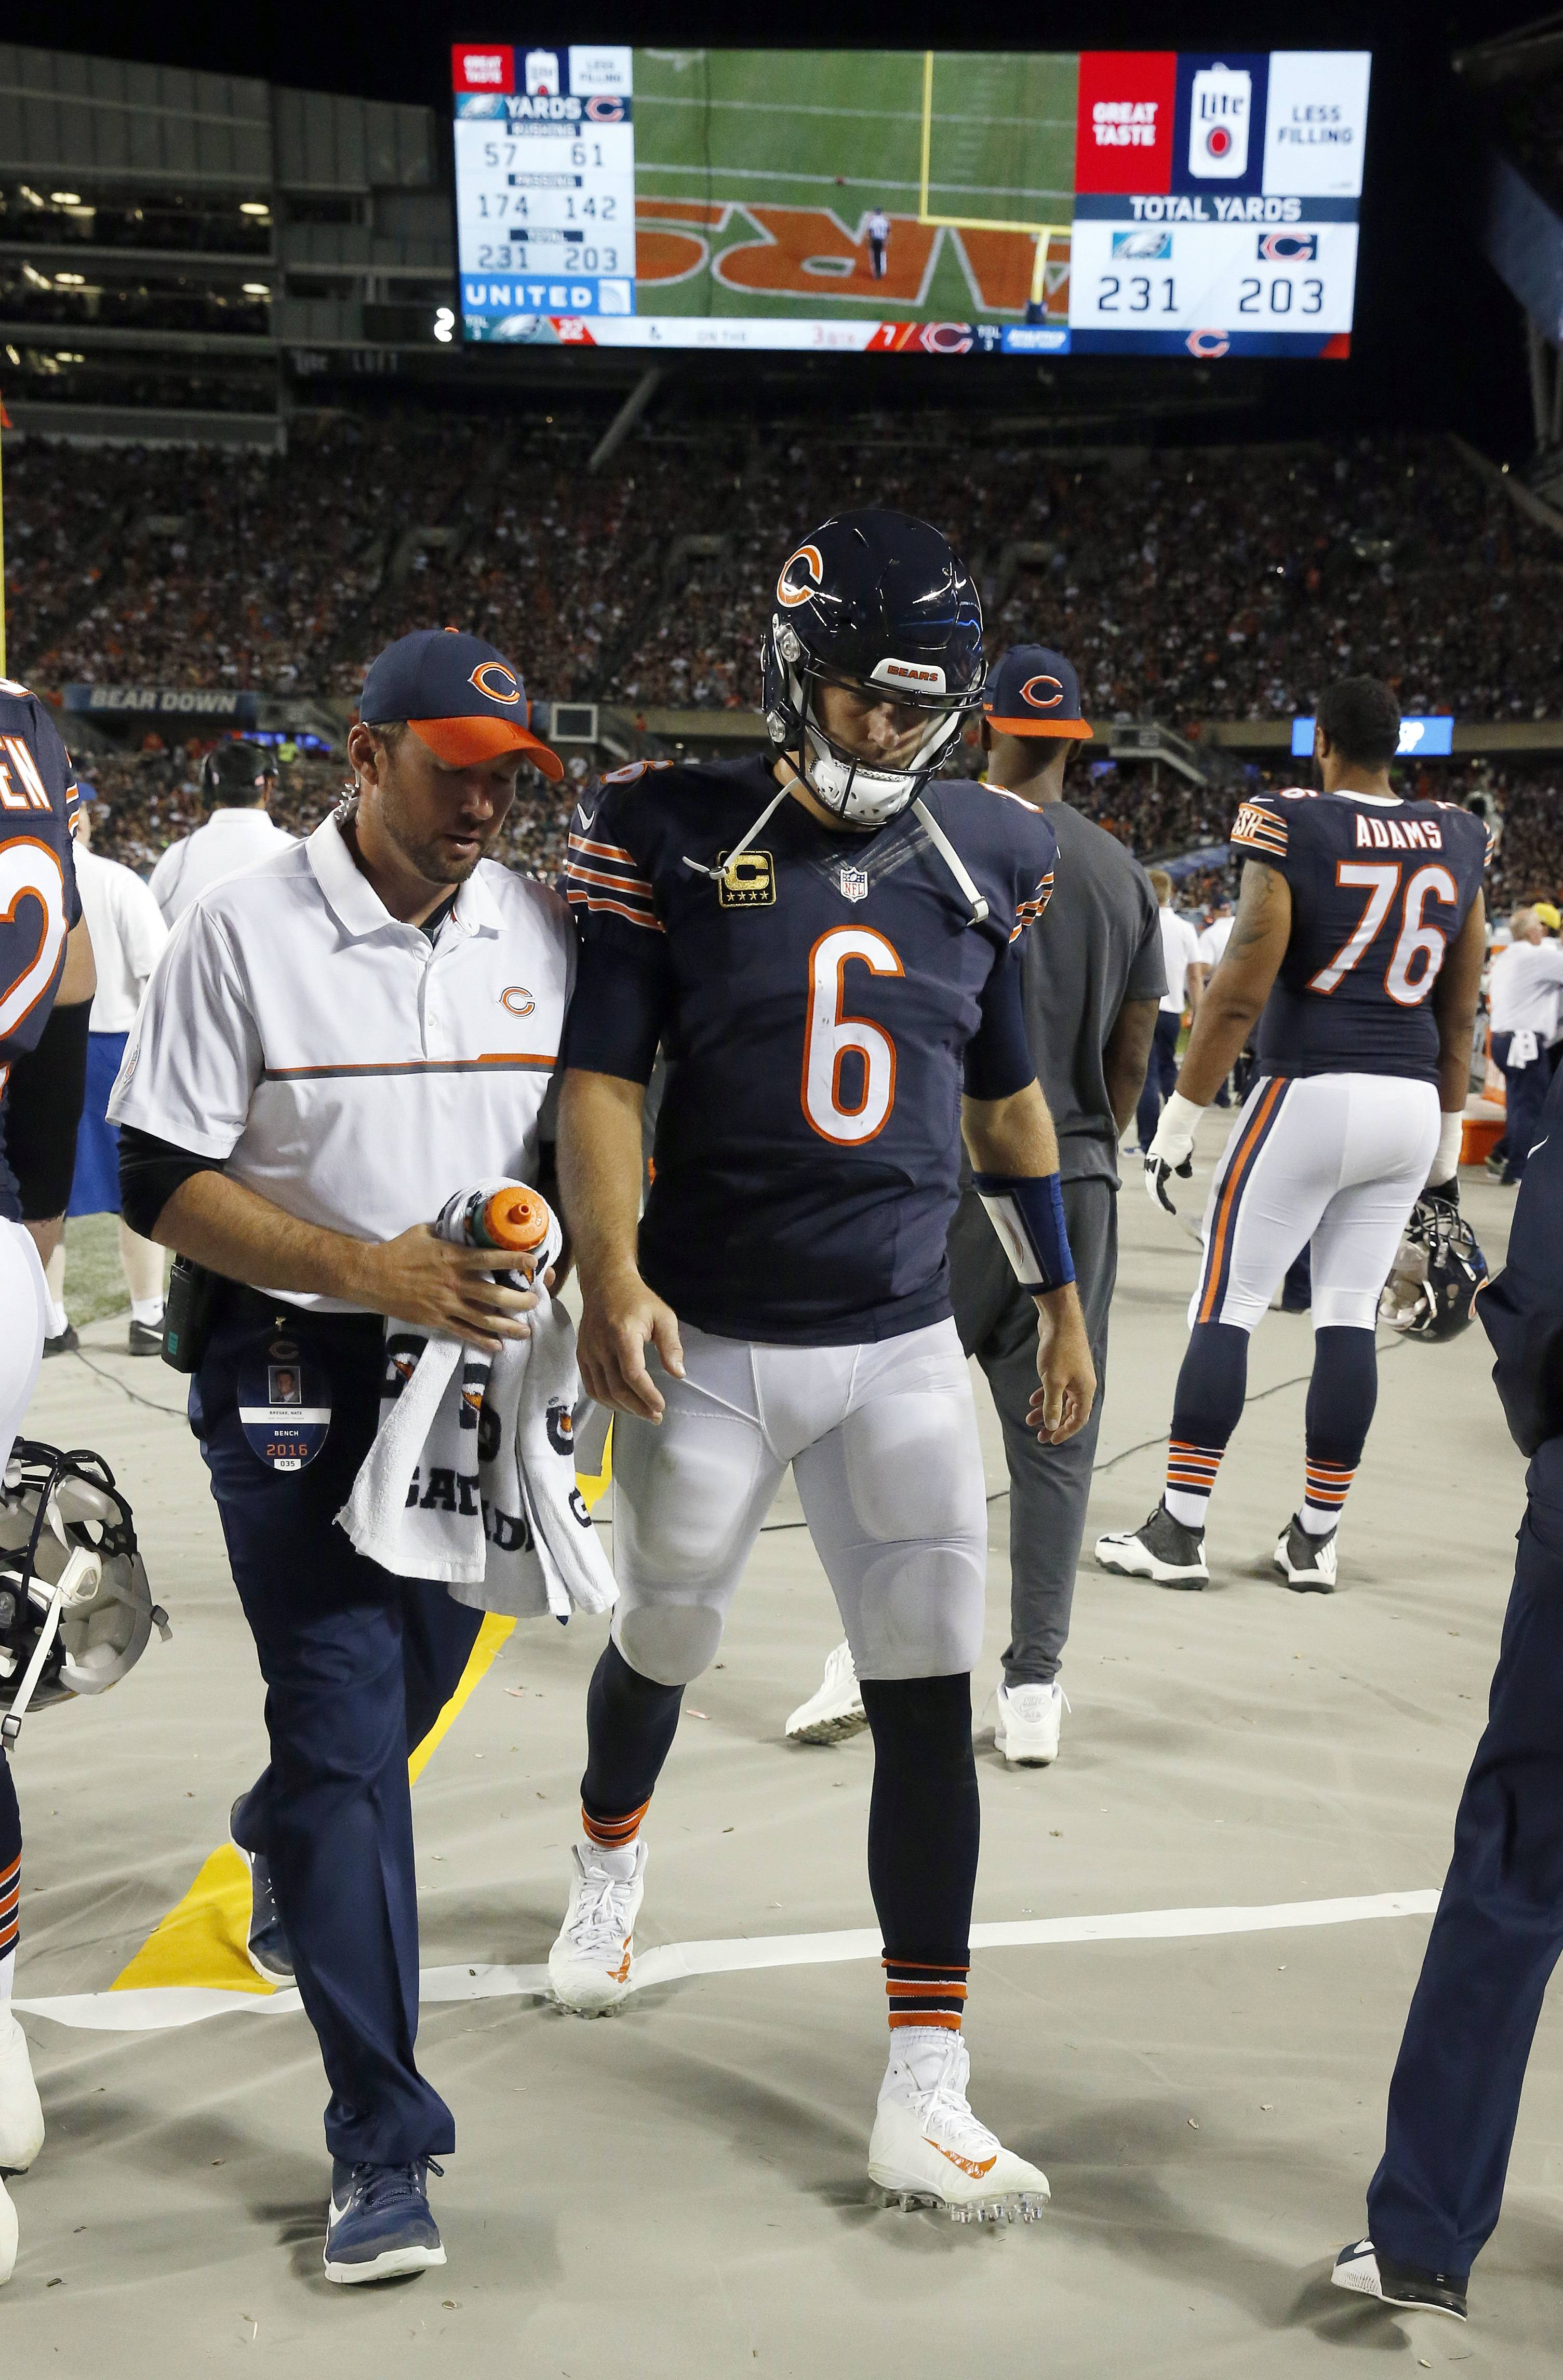 Quarterback Jay Cutler was just one of many Chicago Bears who were inactive for Sunday night's game against the Cowboys.